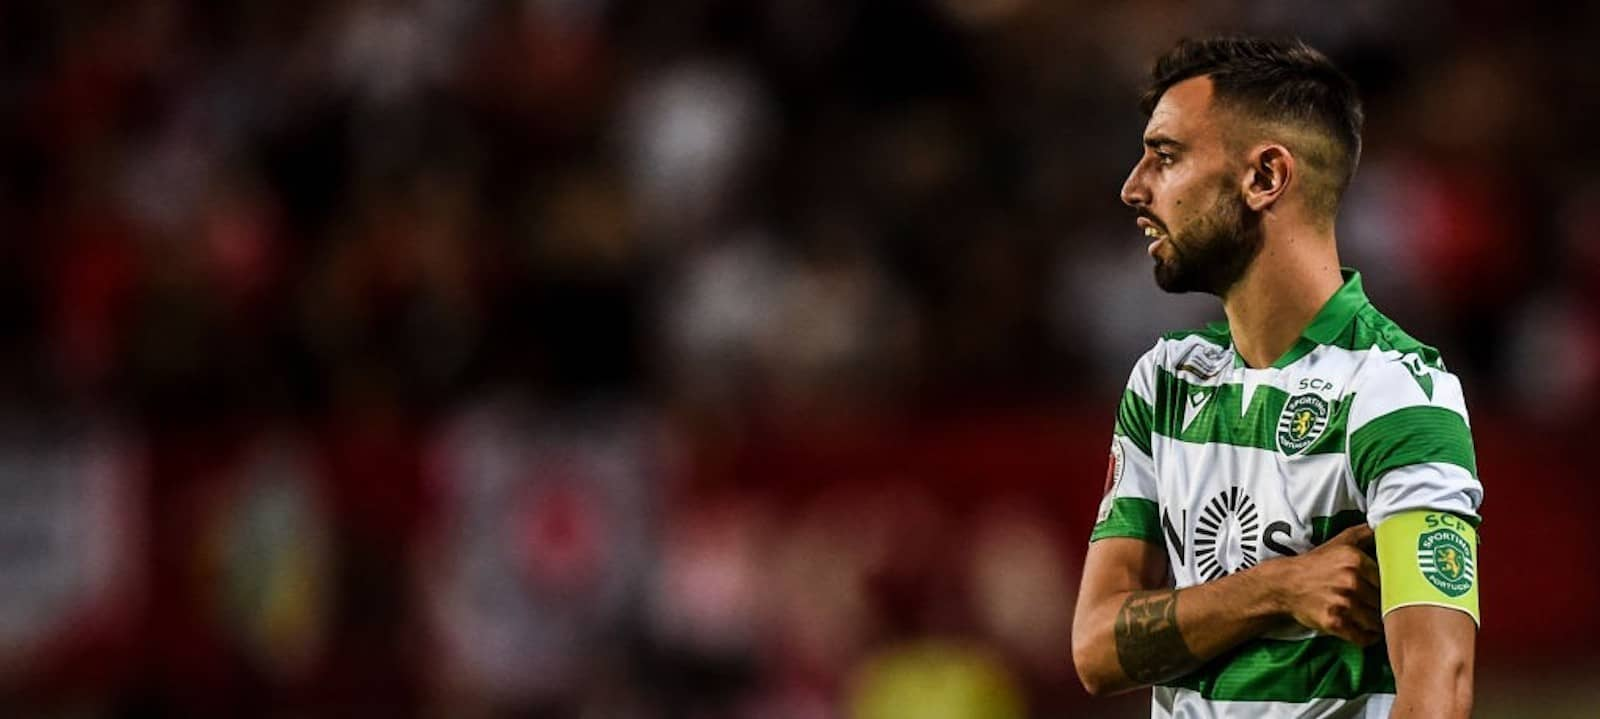 Manchester United fans excited by potential Bruno Fernandes signing